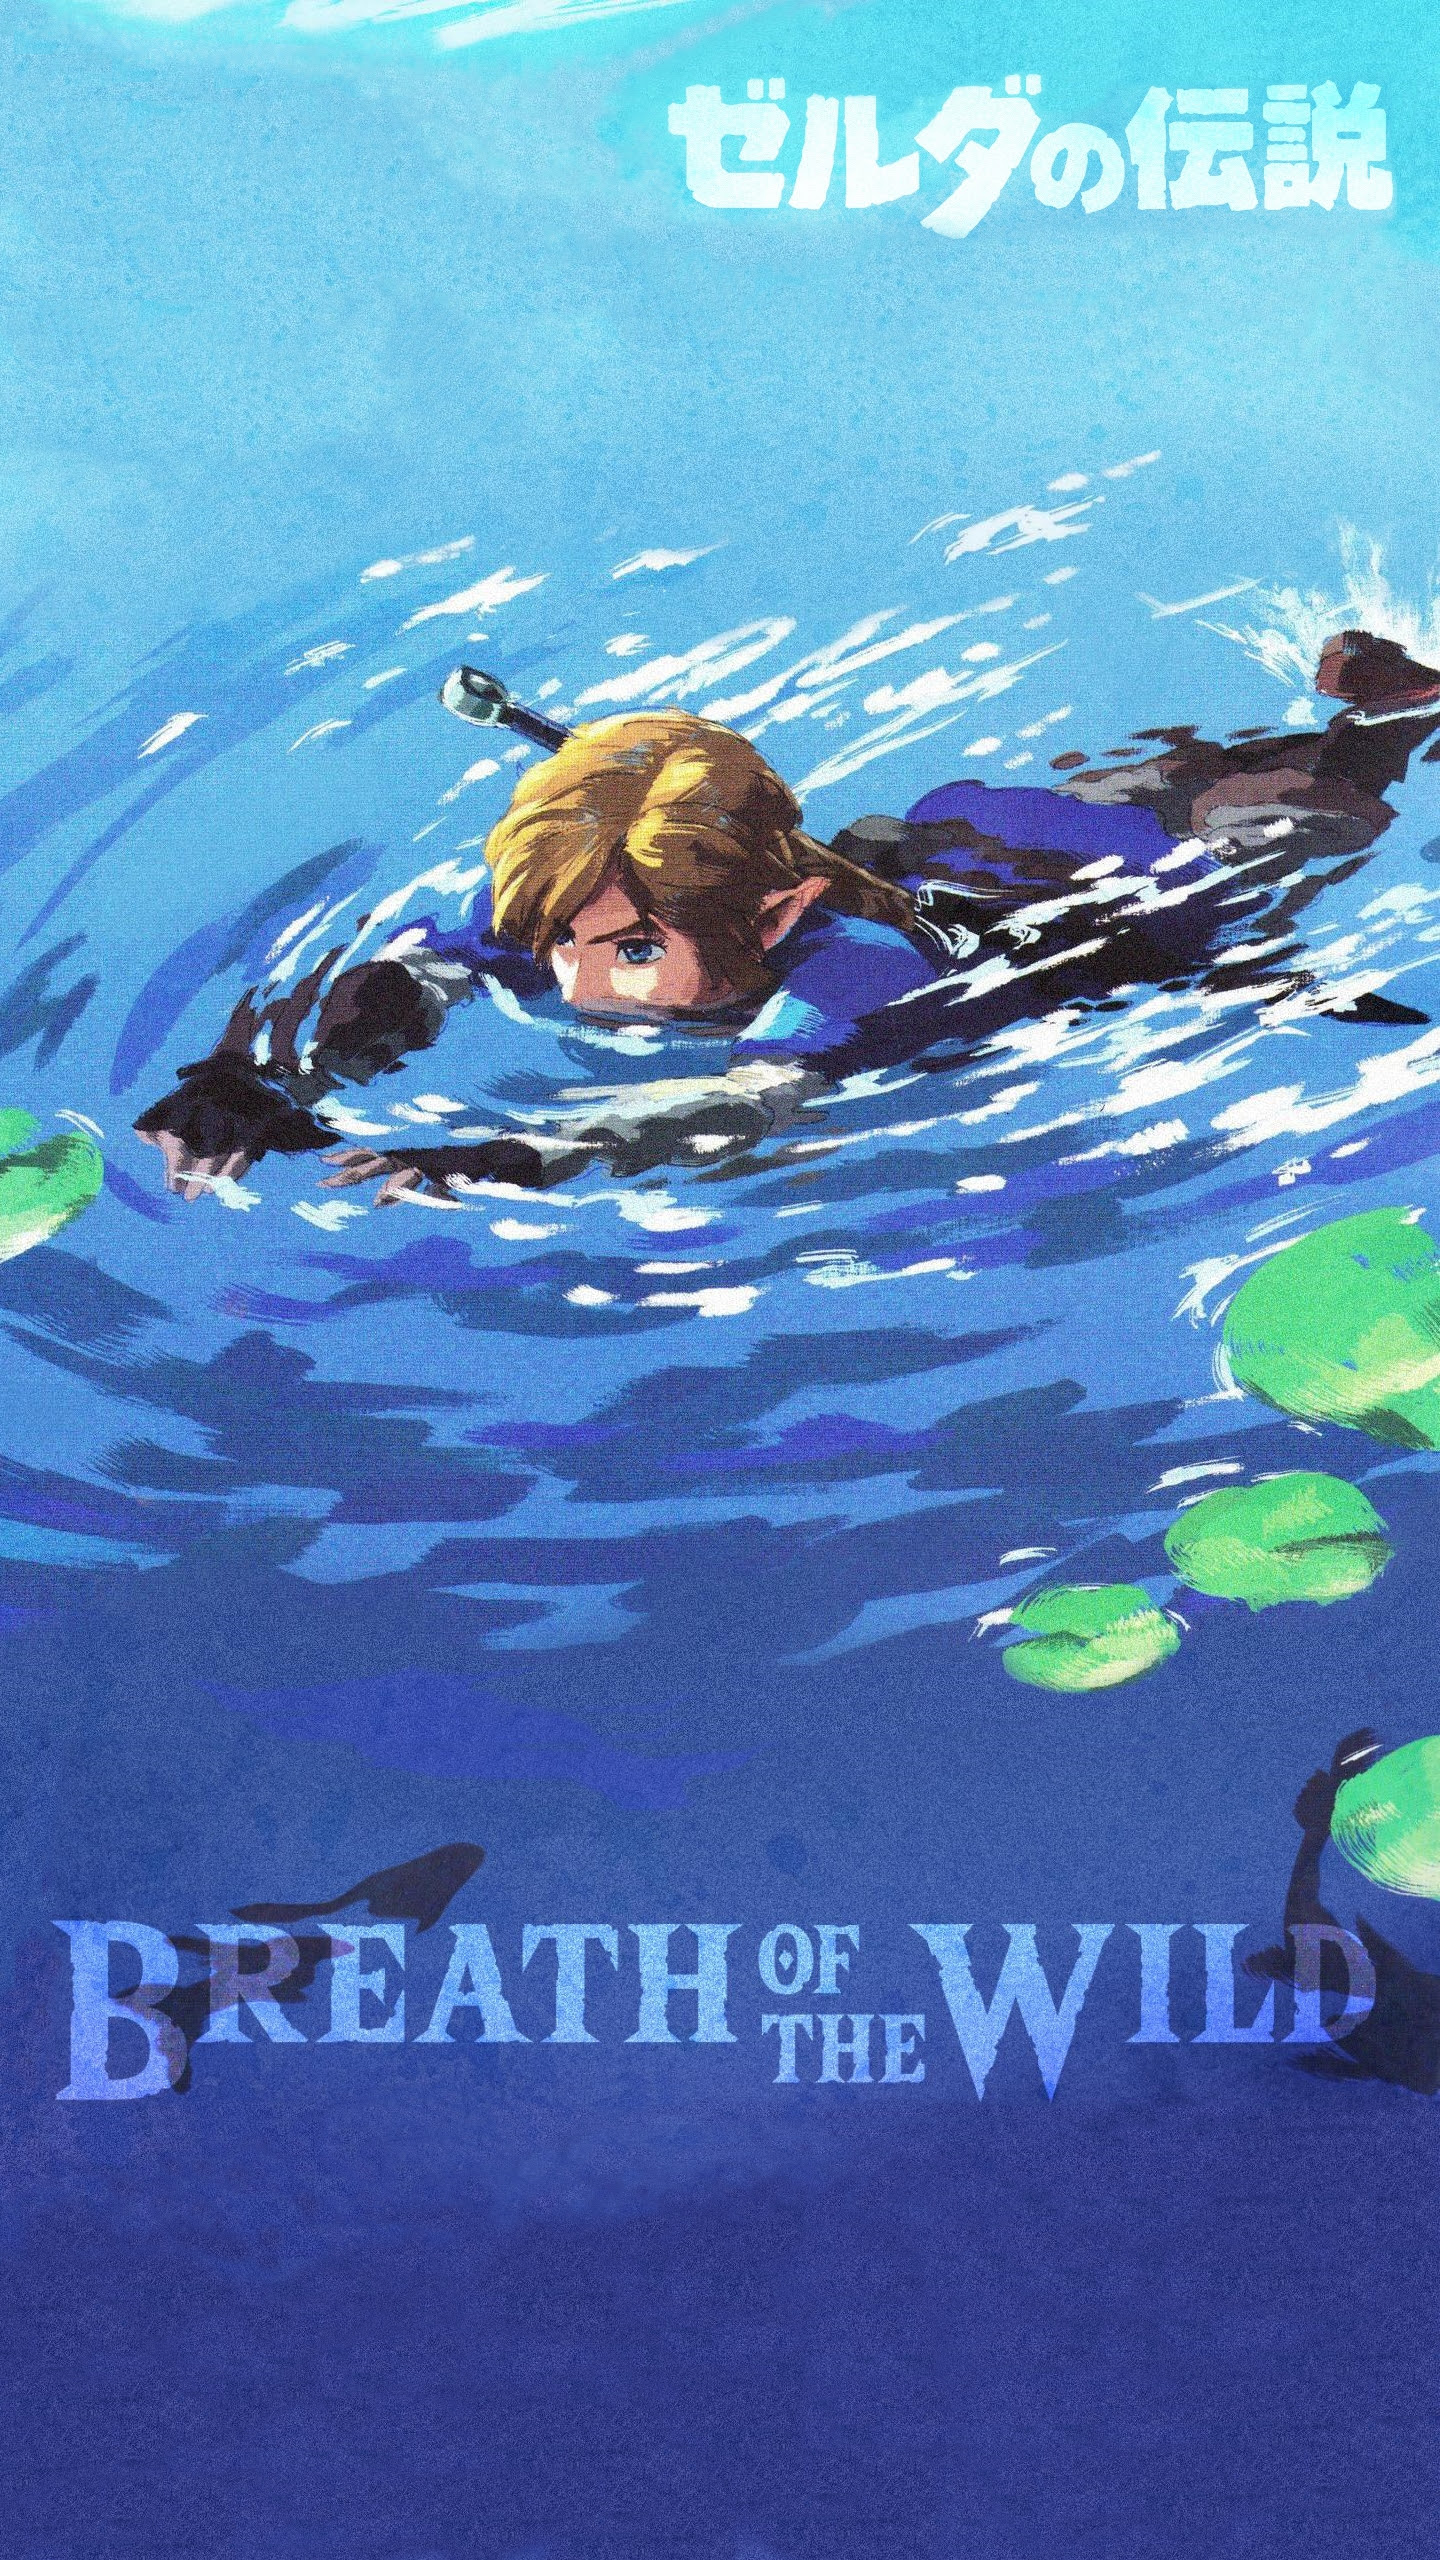 I Cleaned The Breath Of The Wild Art Used For Edge Magazine Issue